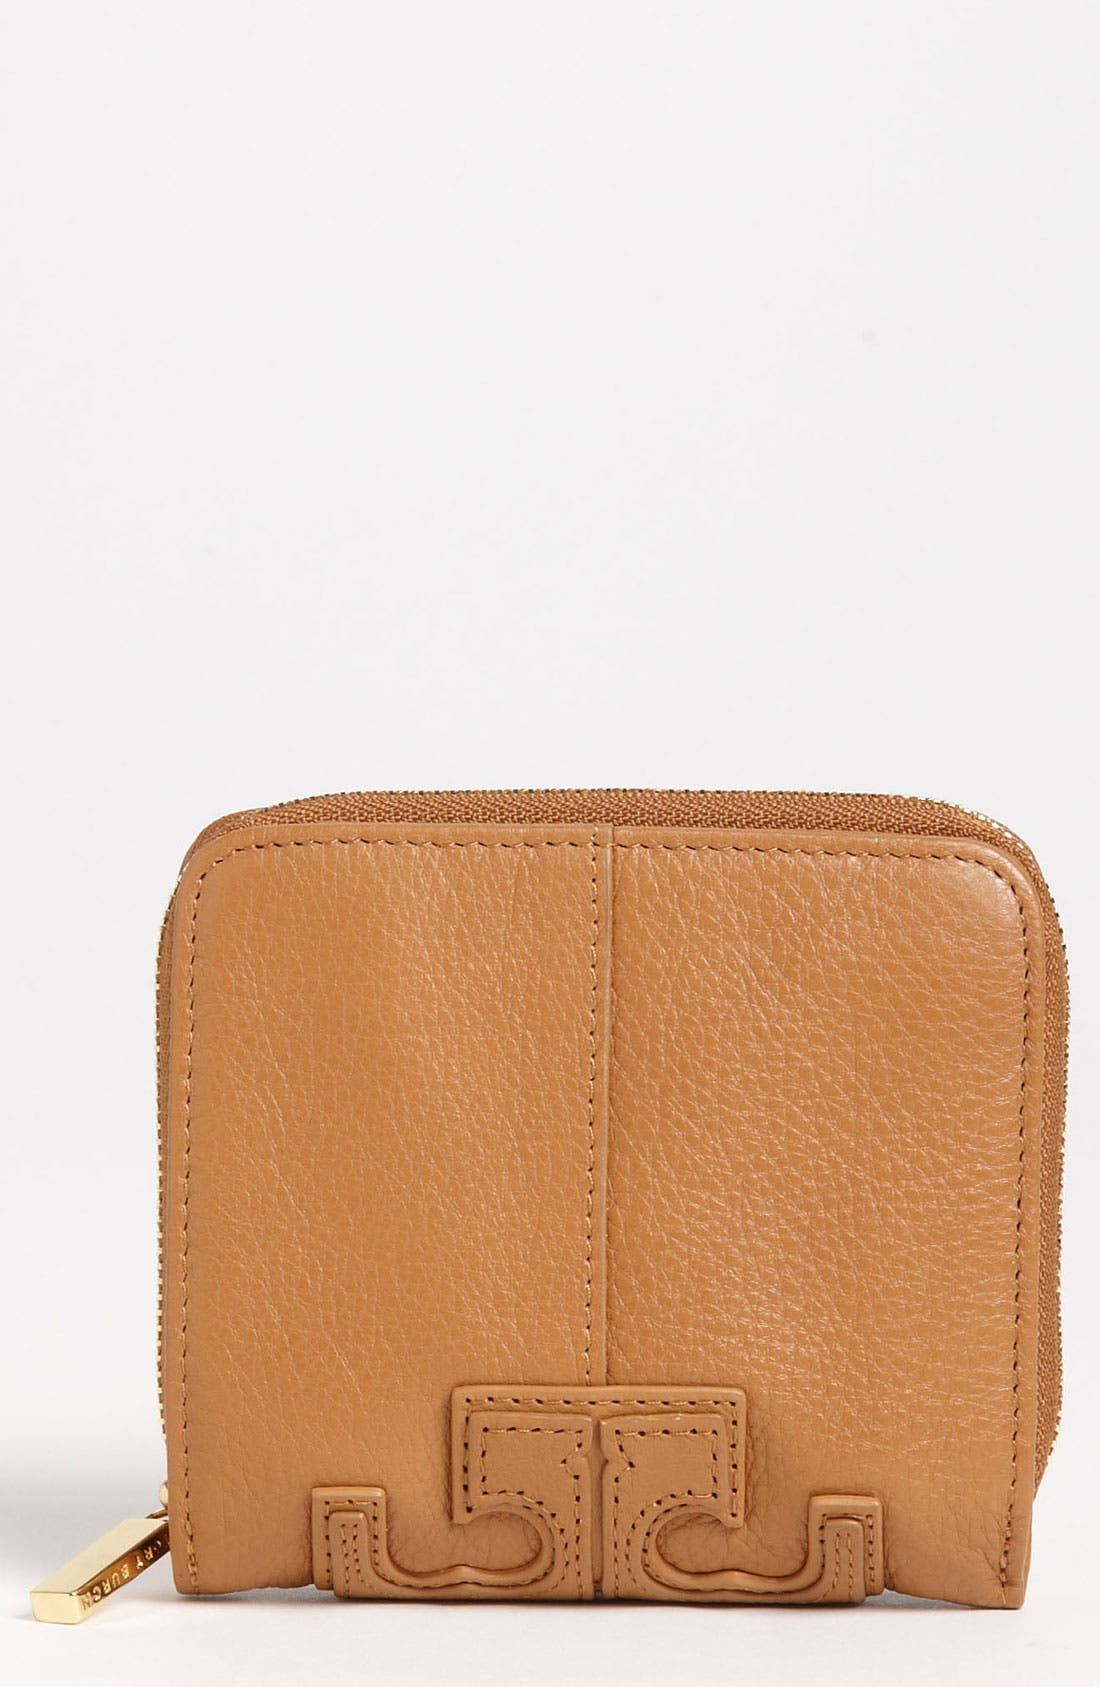 Main Image - Tory Burch 'Stacked T' Compact Wallet